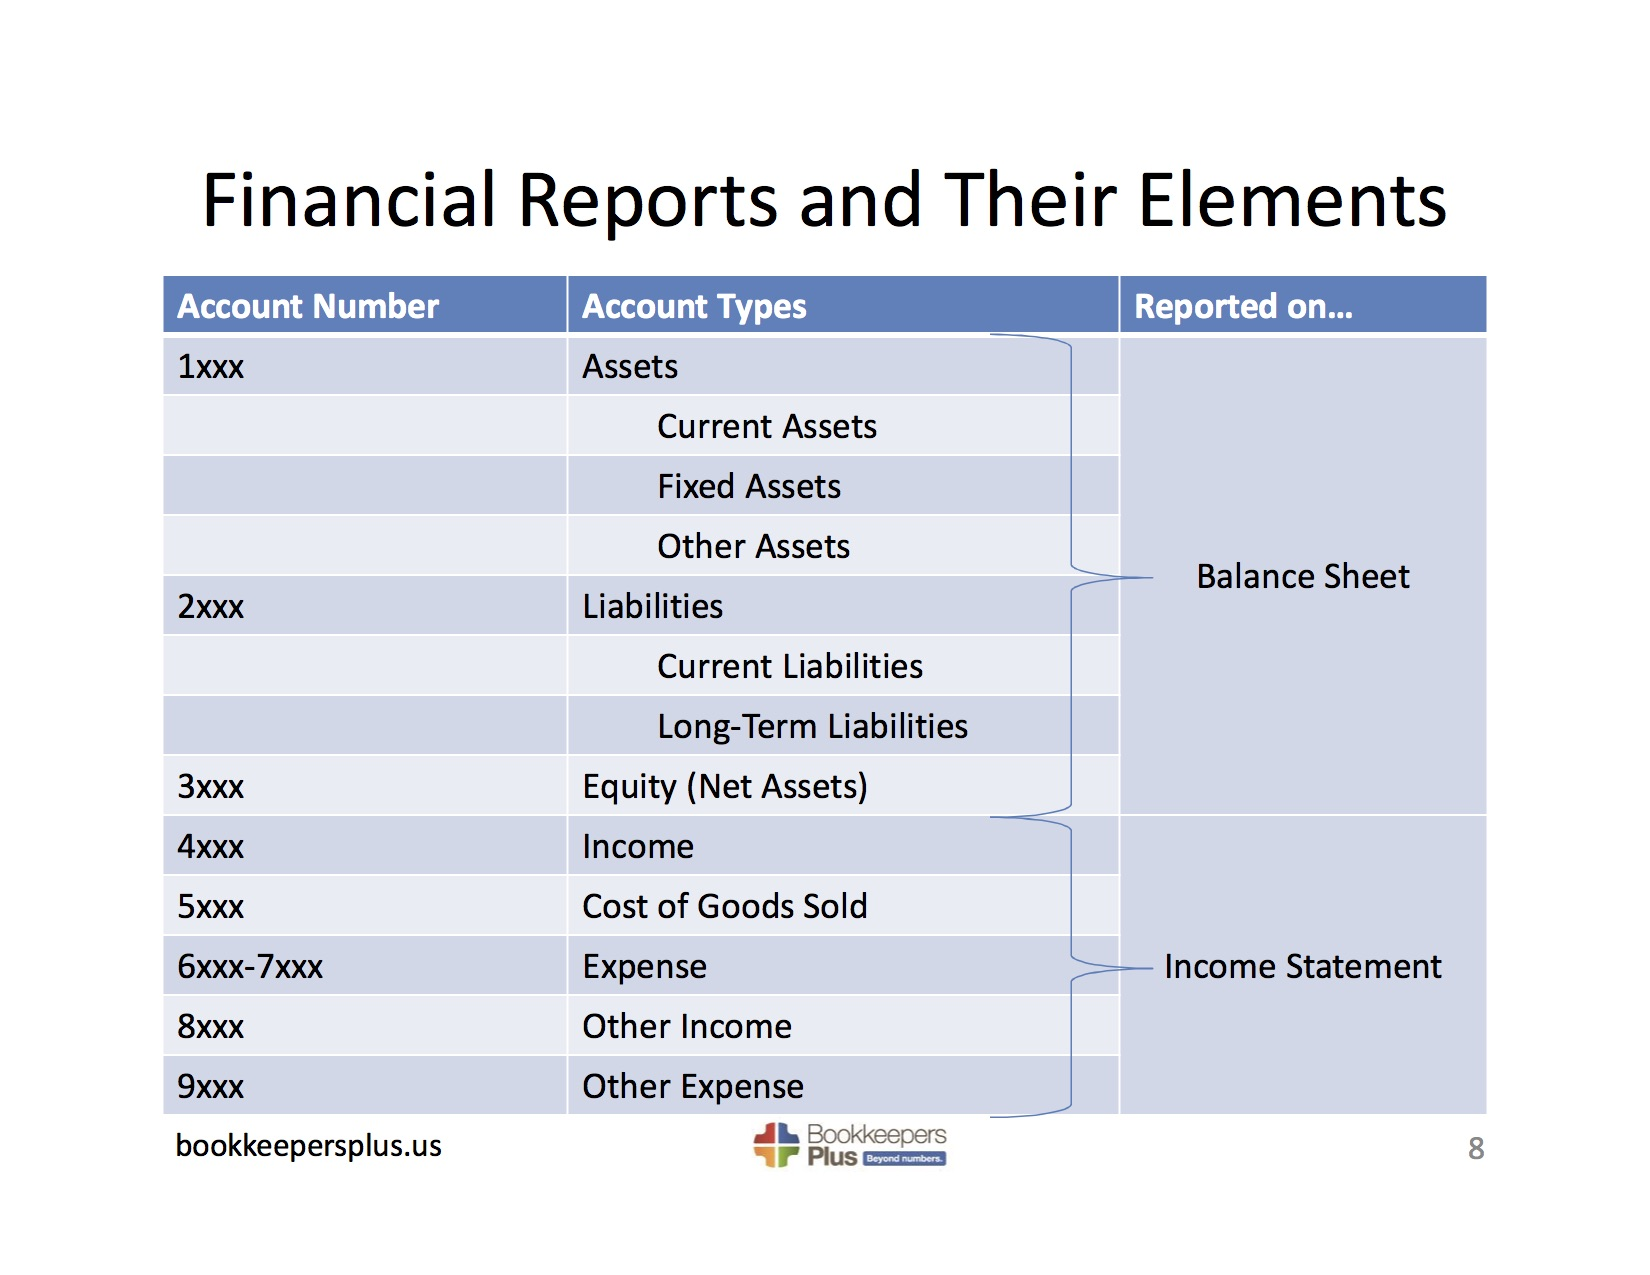 Financial reports help you make sense of the numbers